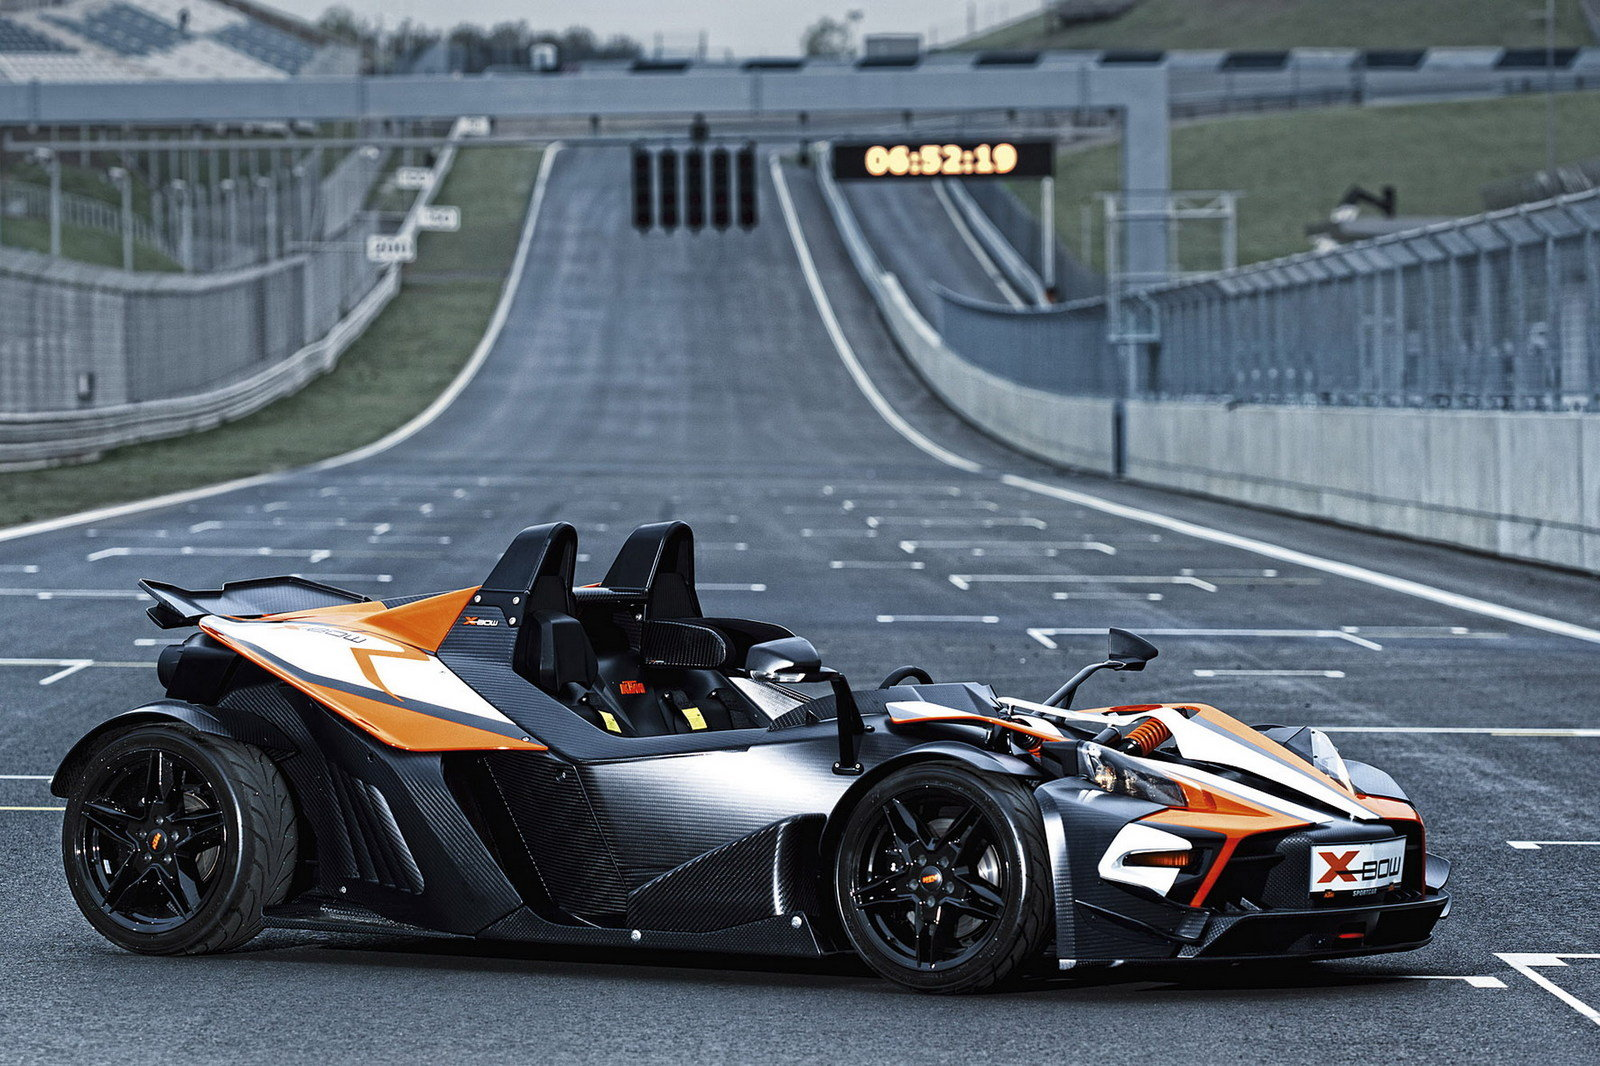 2011 ktm x bow r picture 402841 car review top speed. Black Bedroom Furniture Sets. Home Design Ideas